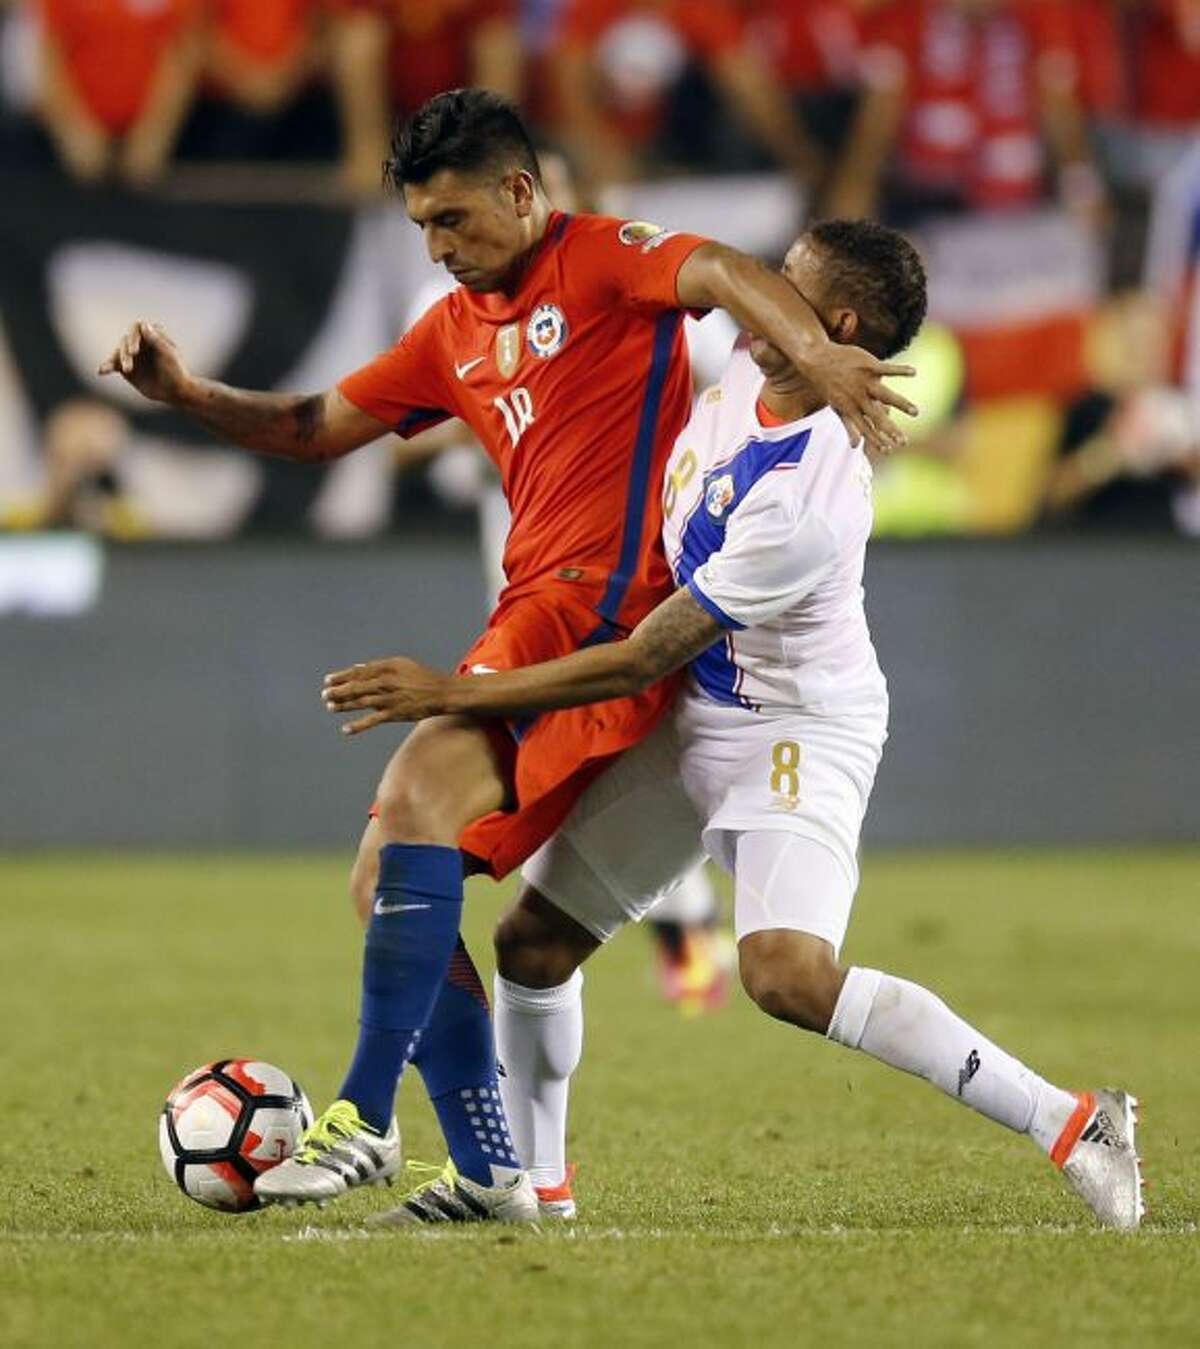 TNS File PhotoChile's Gonzalo Jara fights for a loose ball in the group stages of Copa America.